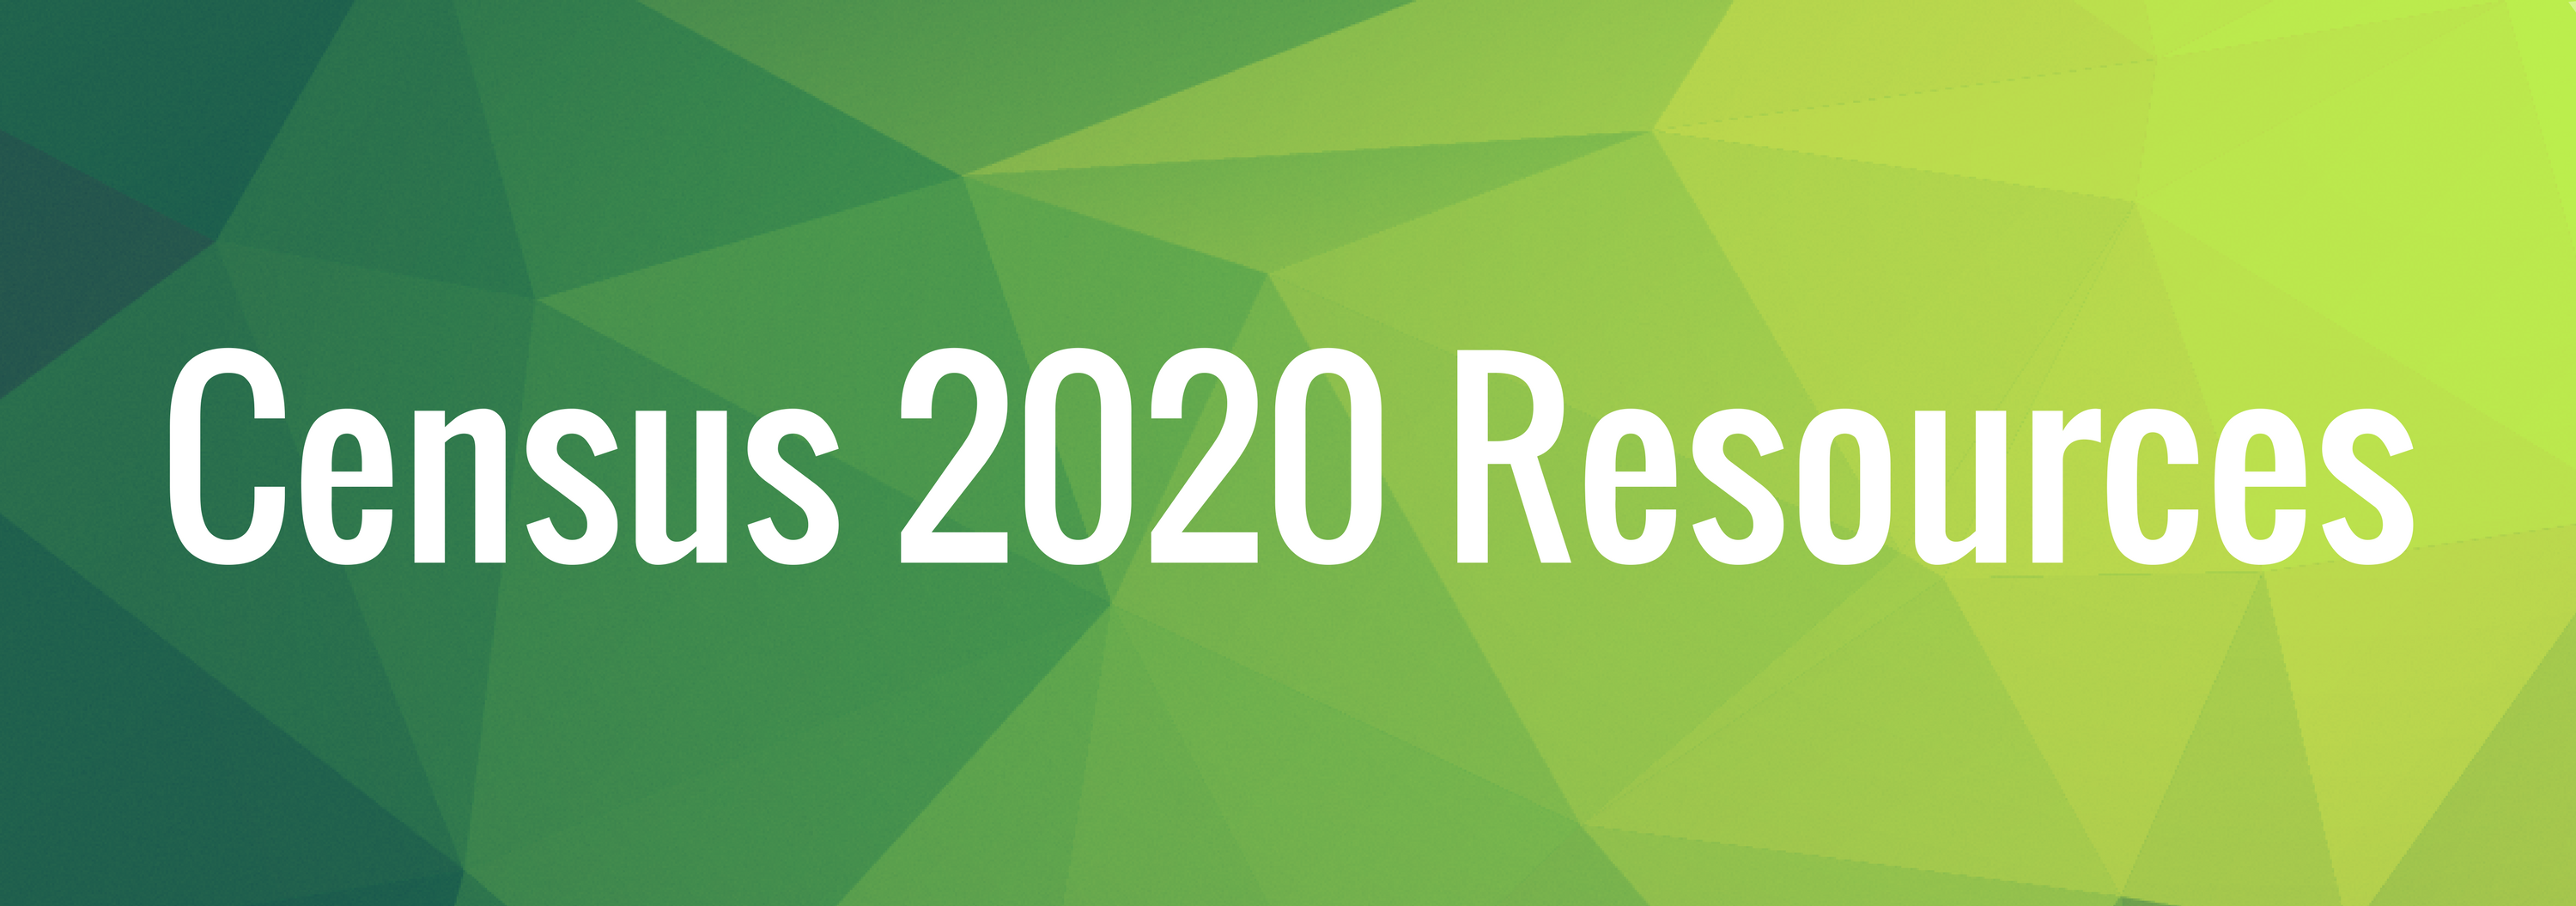 Census_2020_Resources.png